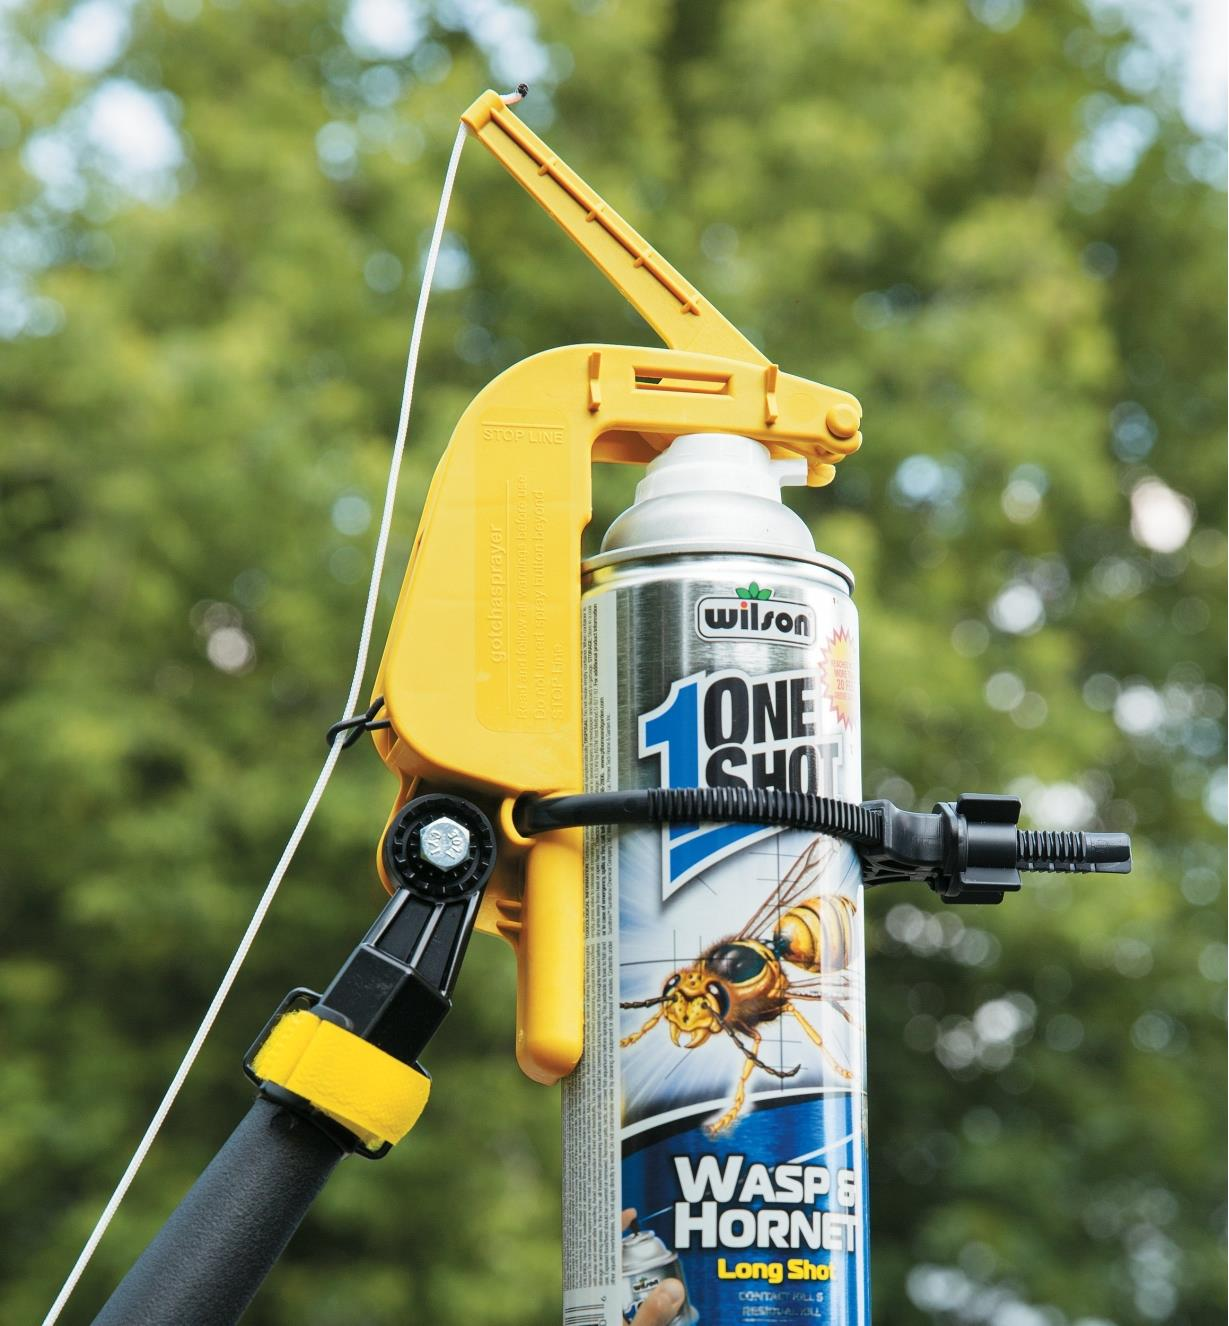 Spray can attached to a pole using the Spray-Can Pole Adapter